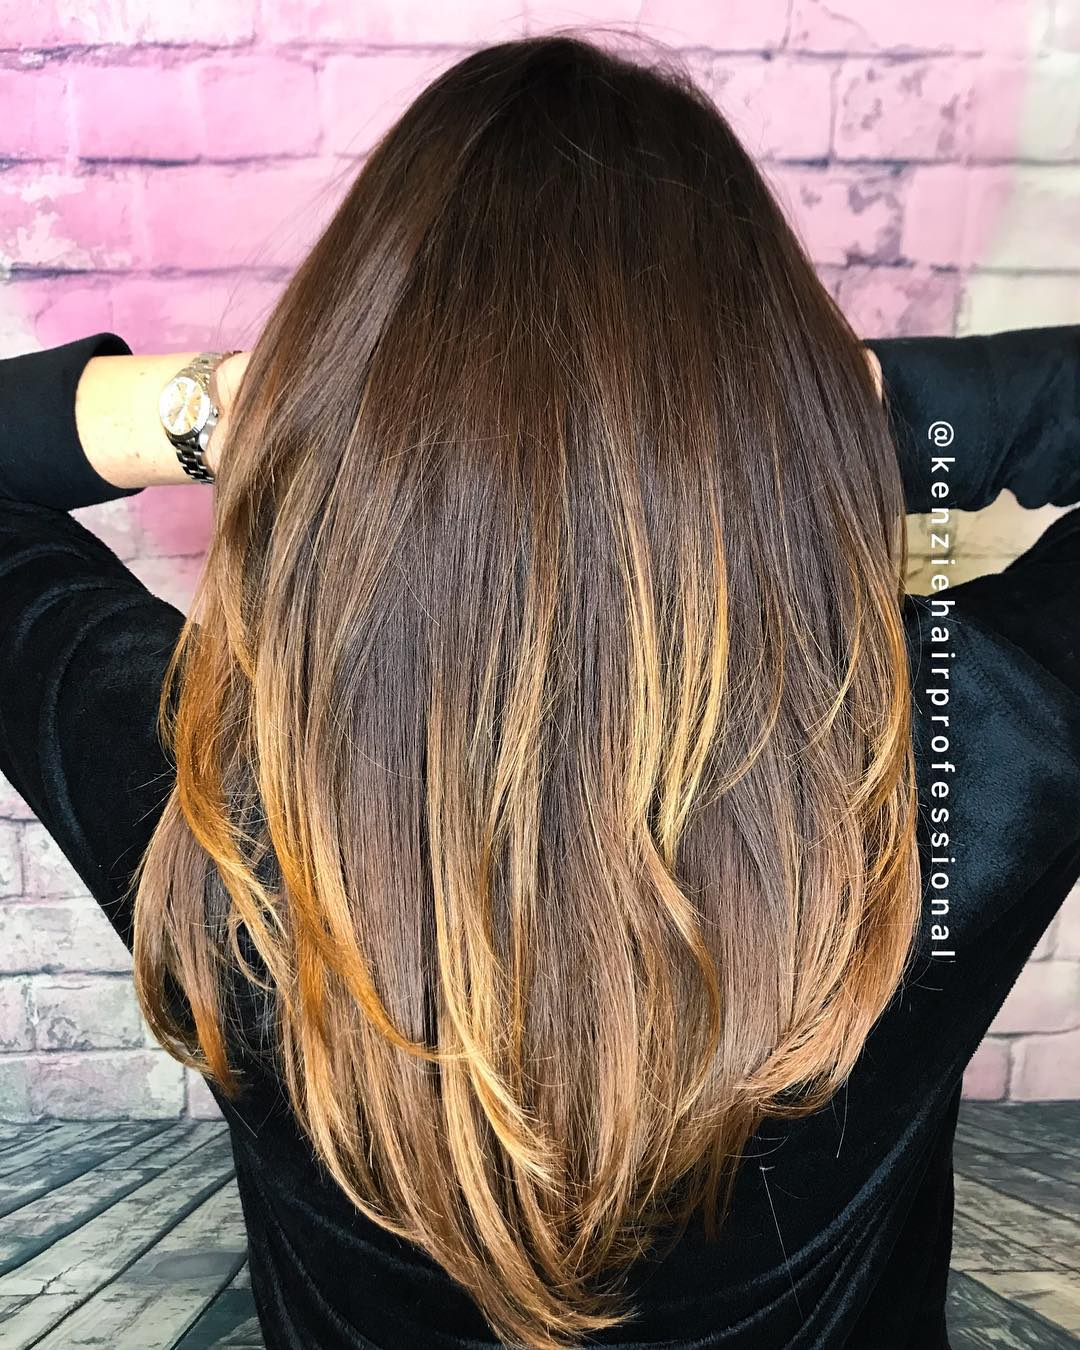 Layered Brunette Hair with Golden Highlights